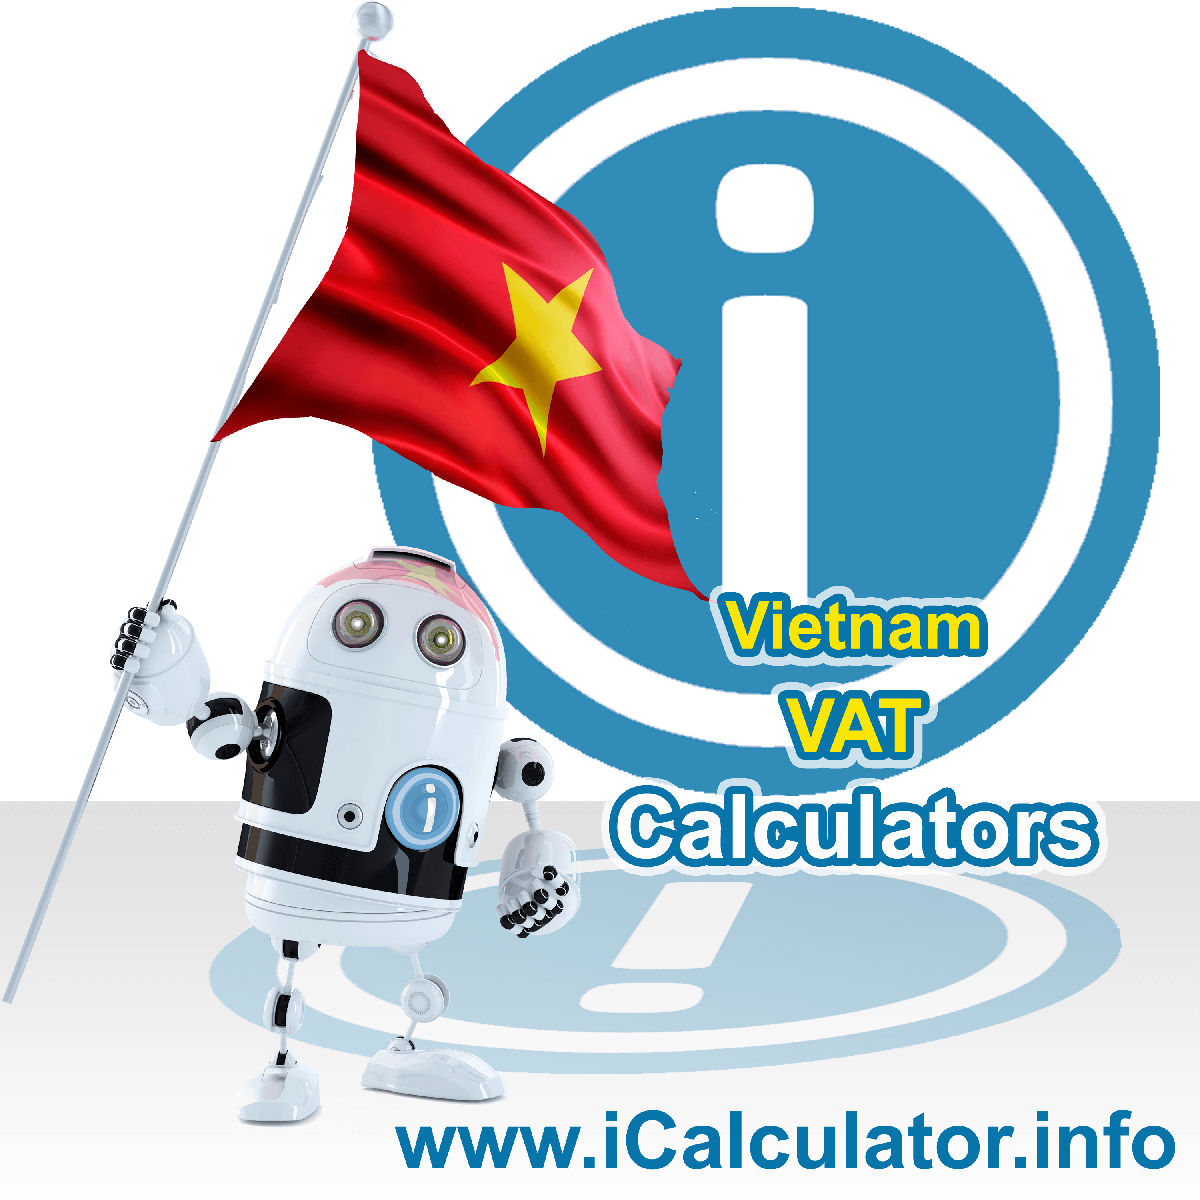 Vietnam VAT Calculator. This image shows the Vietnam flag and information relating to the VAT formula used for calculating Value Added Tax in Vietnam using the Vietnam VAT Calculator in 2021